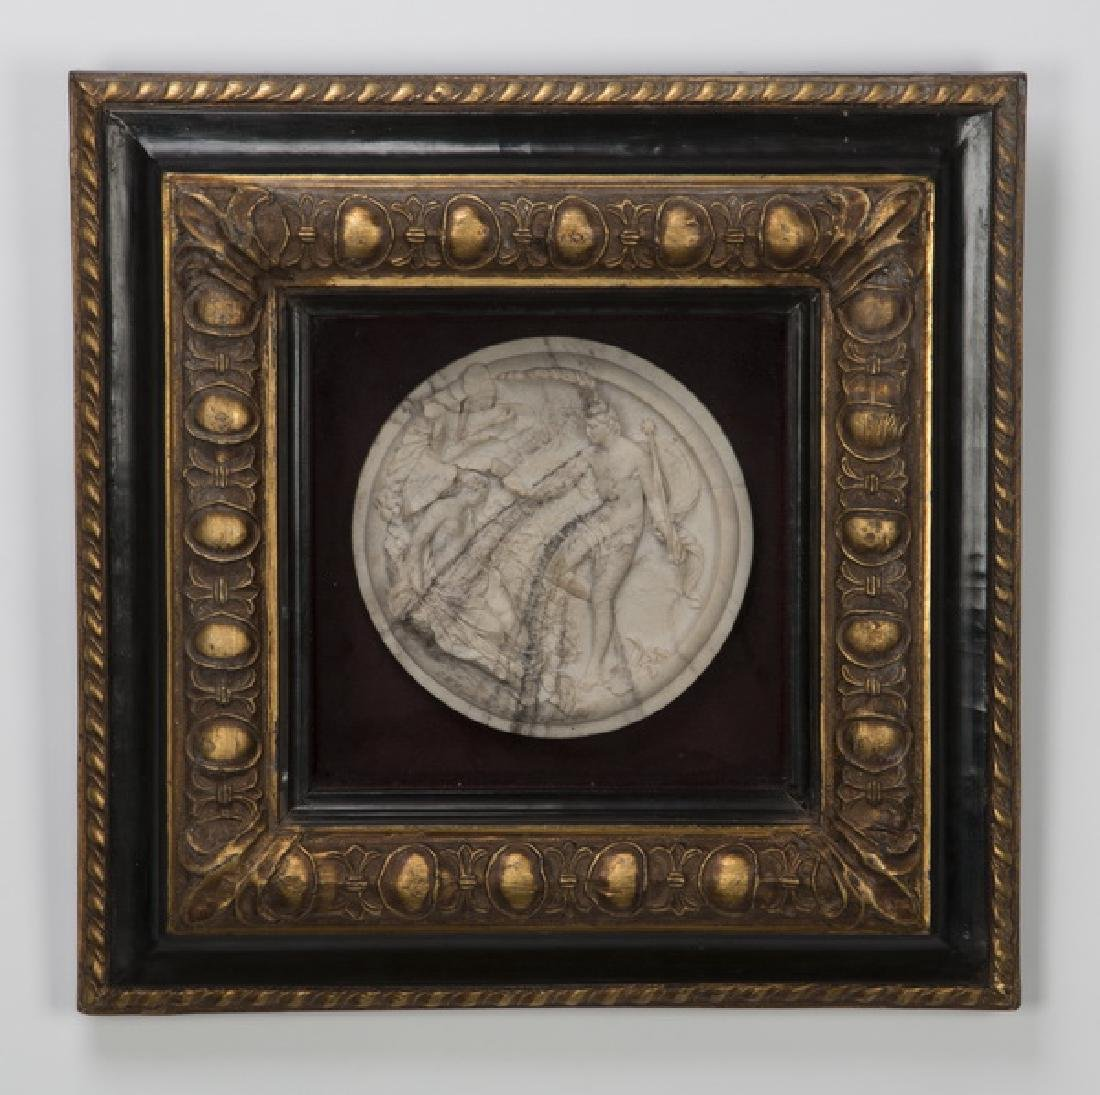 Framed cultured stone roundel of Oberon & Titania